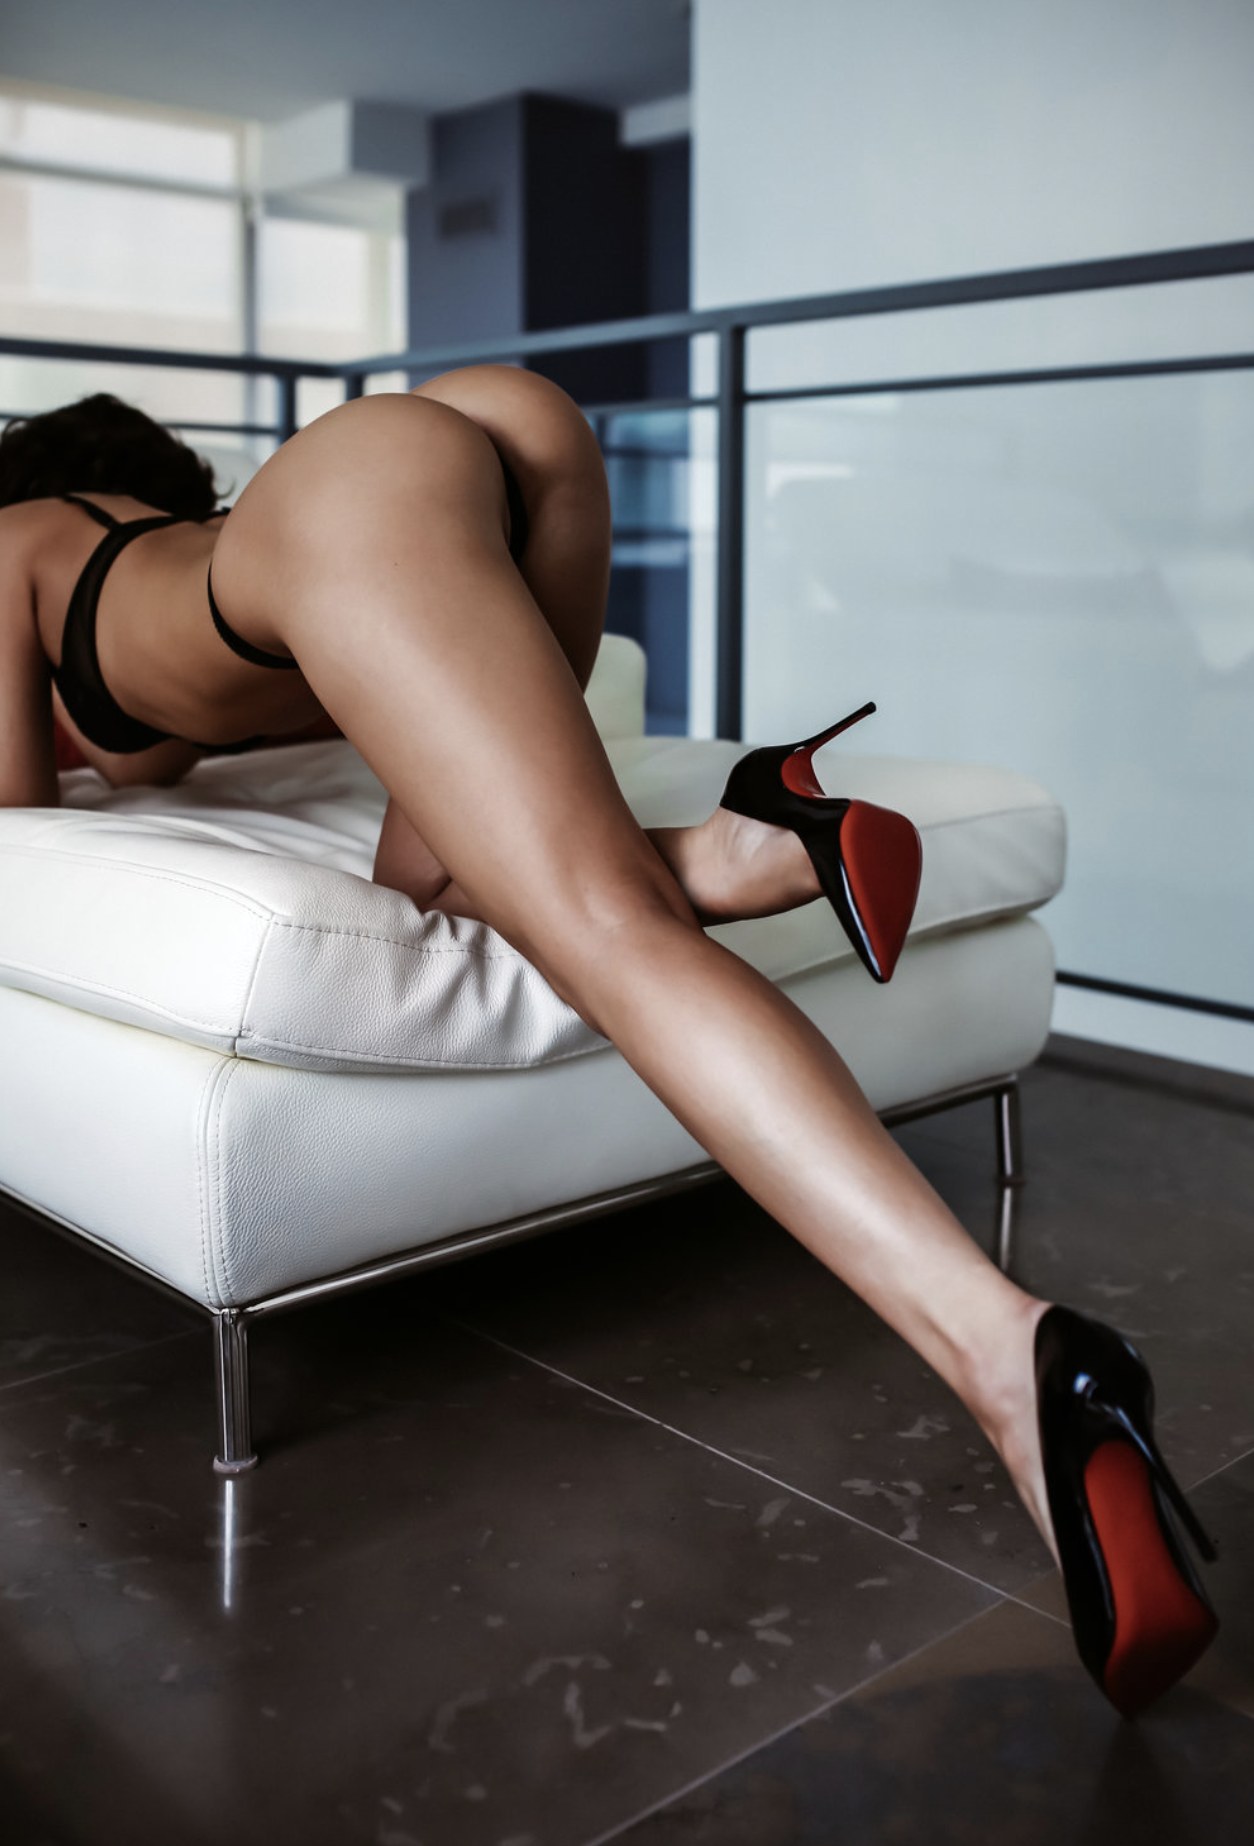 Toronto Escorts  | Toronto  Independent  Escorts | Independent Escorts in Toronto | Elite Upscale VIP Independent Escort in Toronto |  High End  Toronto Escort | Brunette Escort in Toronto  Nadine de Valle is an elite upscale  independent escort  based in  Toronto , Canada available for discreet incall and outcall dates in downtown Toronto and the GTA (Vaughan, Markham, Oakville, Richmond Hill, North Toronto, Etobicoke). Nadine is also available for  duos , dinner dates, luxury FMTY (fly me to you) travel engagements, and monthly arrangements.